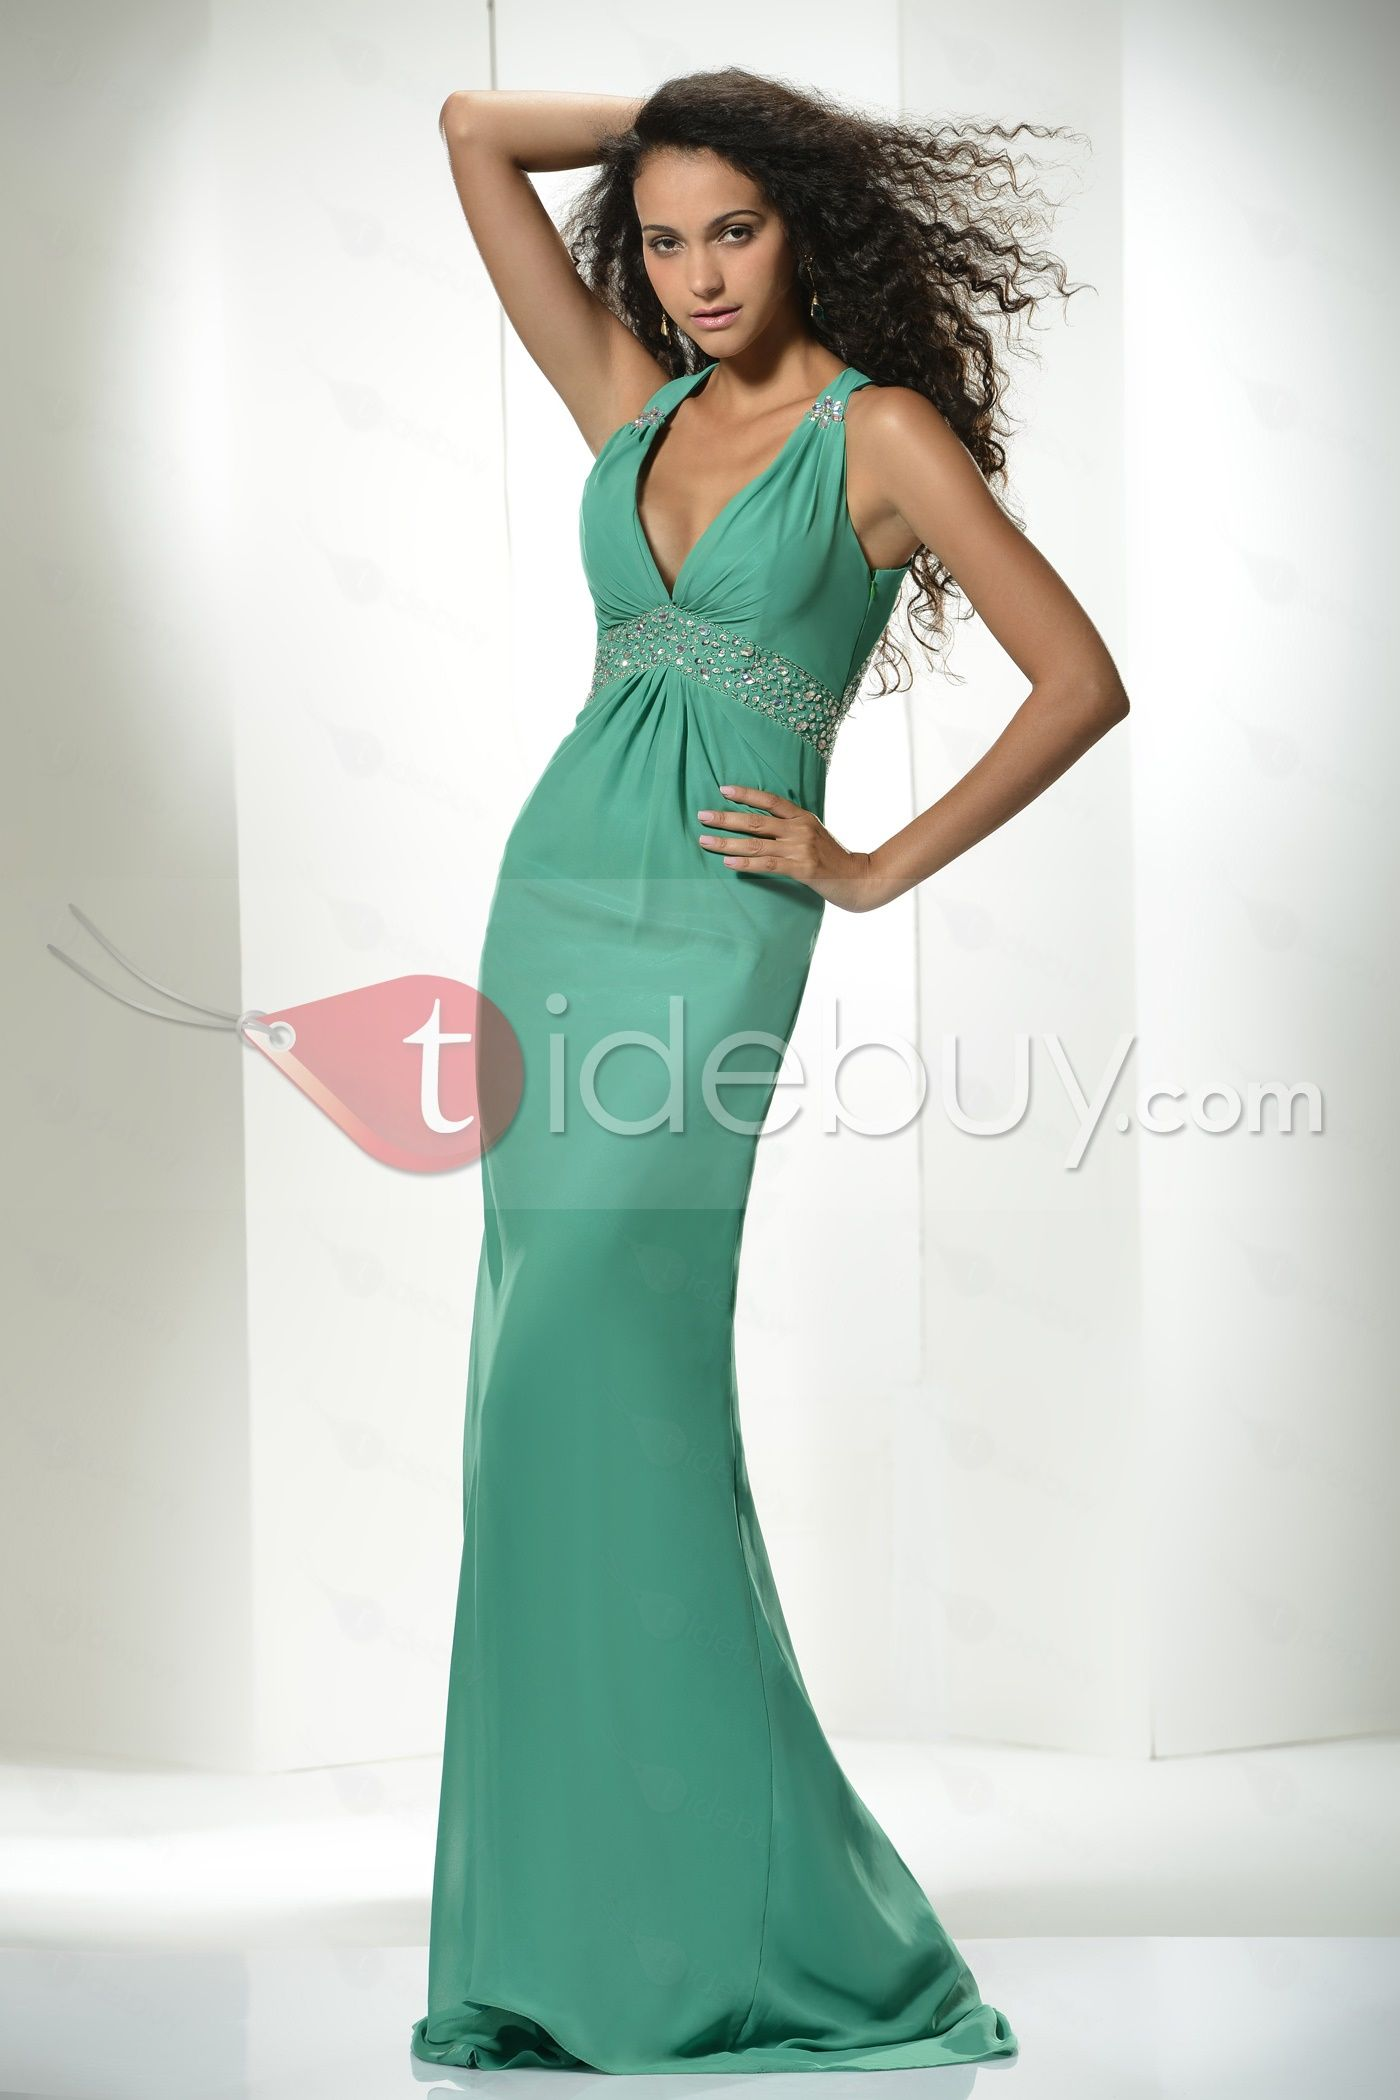 Glamorous Colonne / gaine robe de soirée-parole longueur V-cou  Glamorous Column / Sheath Evening Dress Floor-length V-neck